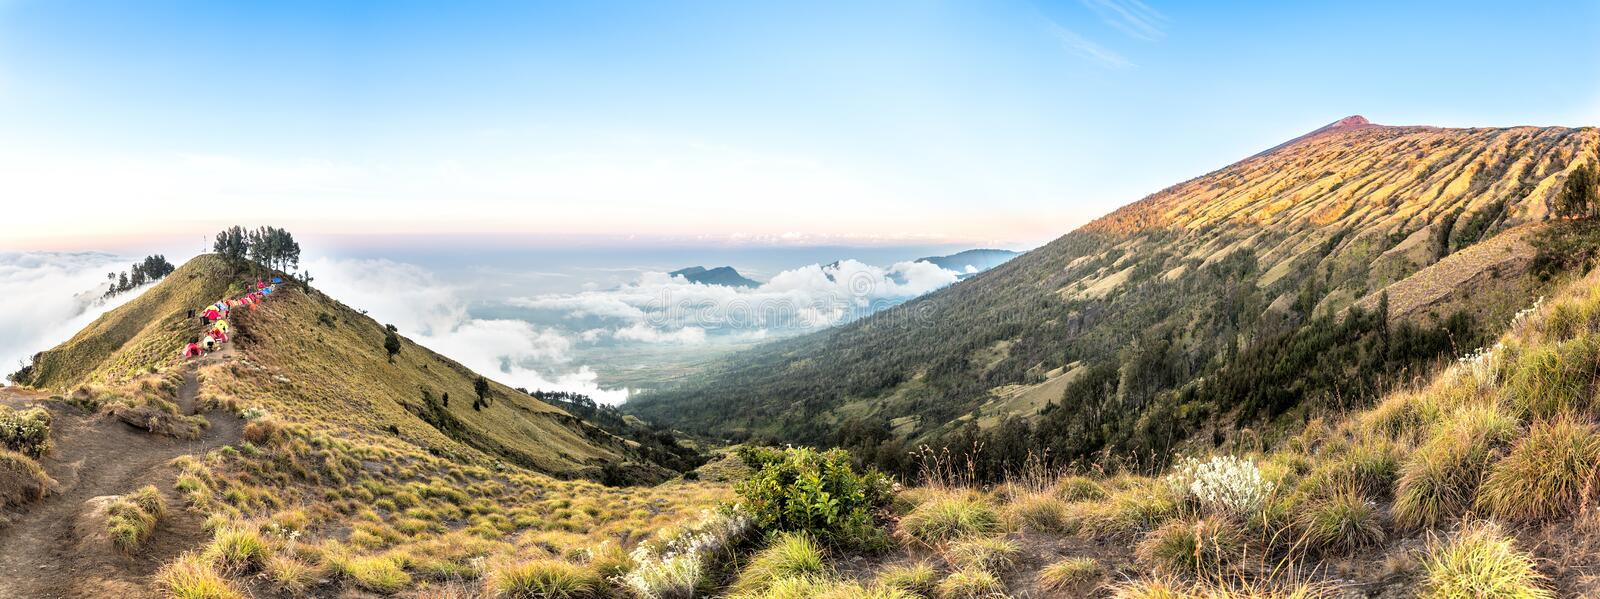 Panorama mountain view above the cloud and blue sky. Rinjani mountain, Lombok island, Indonesia.  royalty free stock image